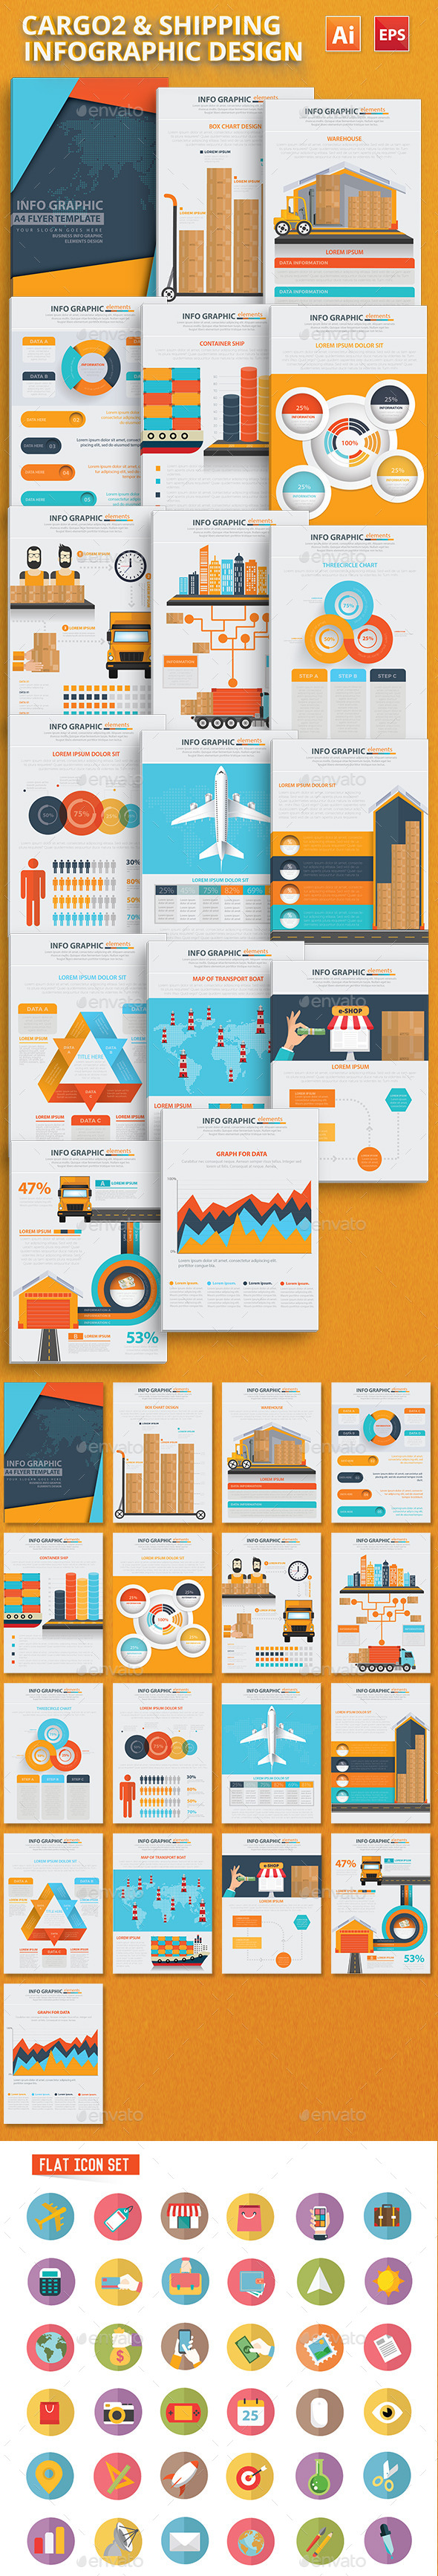 Cargo2 & Logistic Infograhphics Design - Infographics